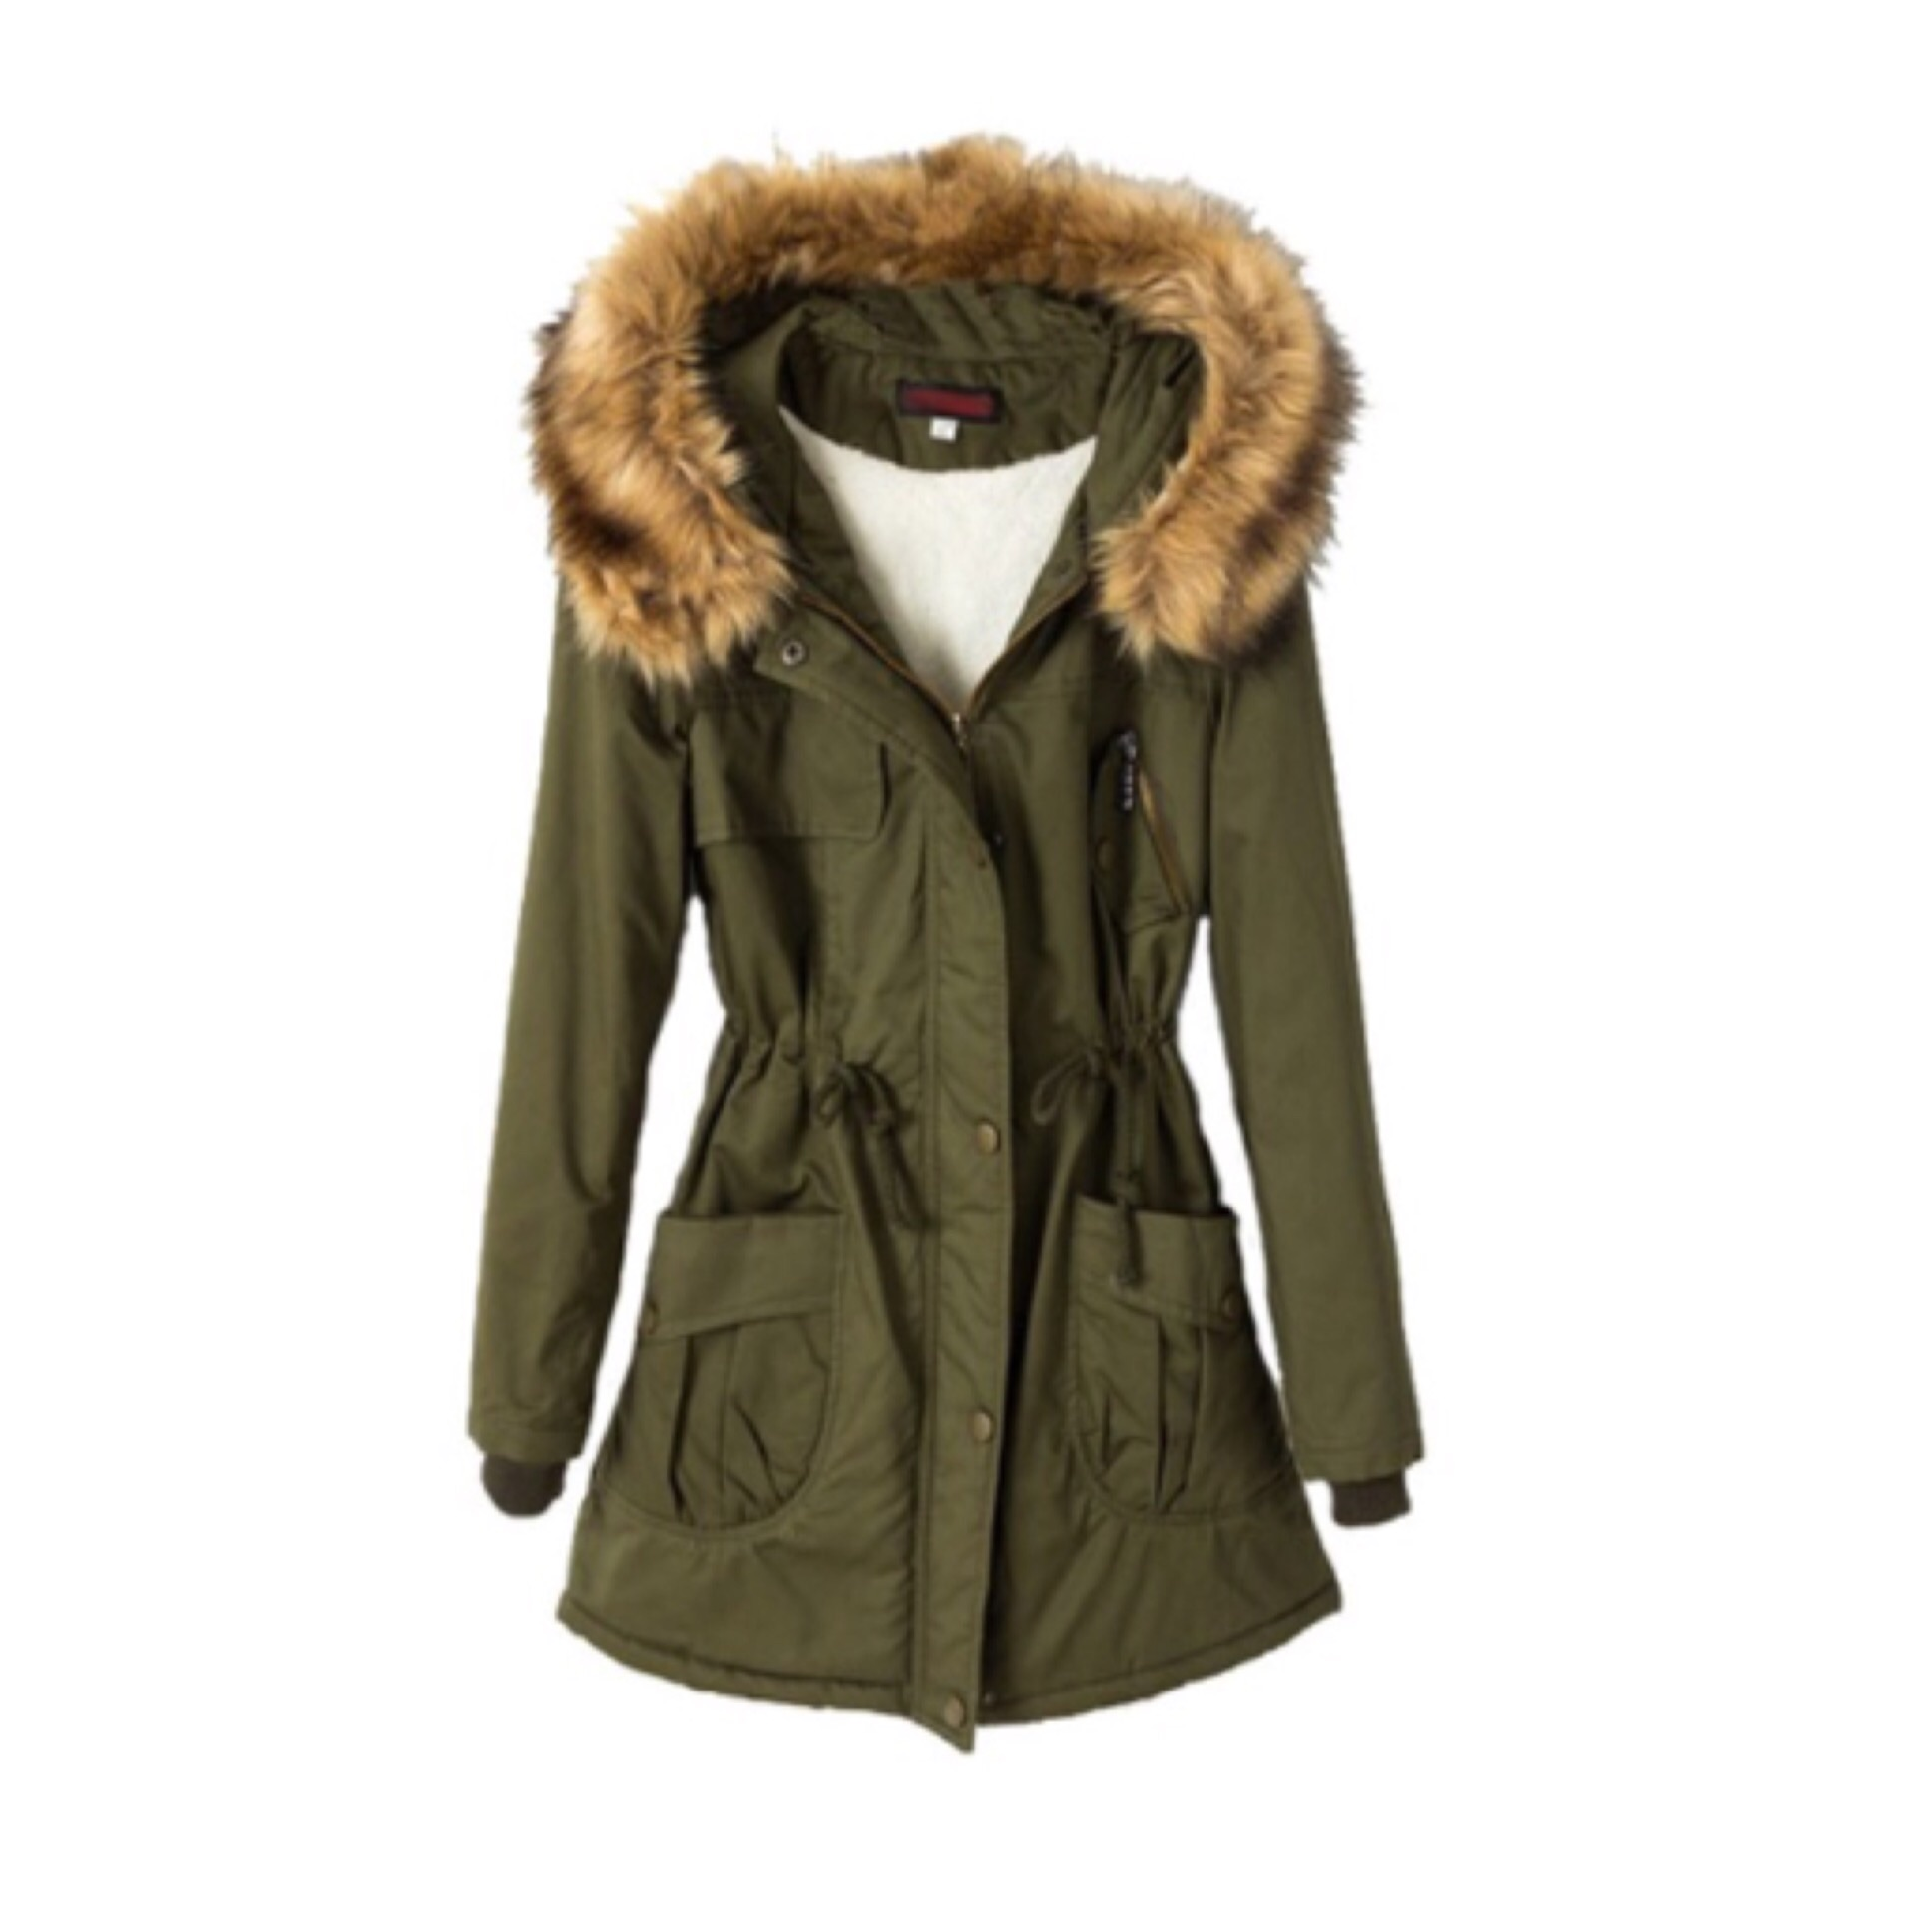 Images of Army Green Winter Coat - The Fashions Of Paradise